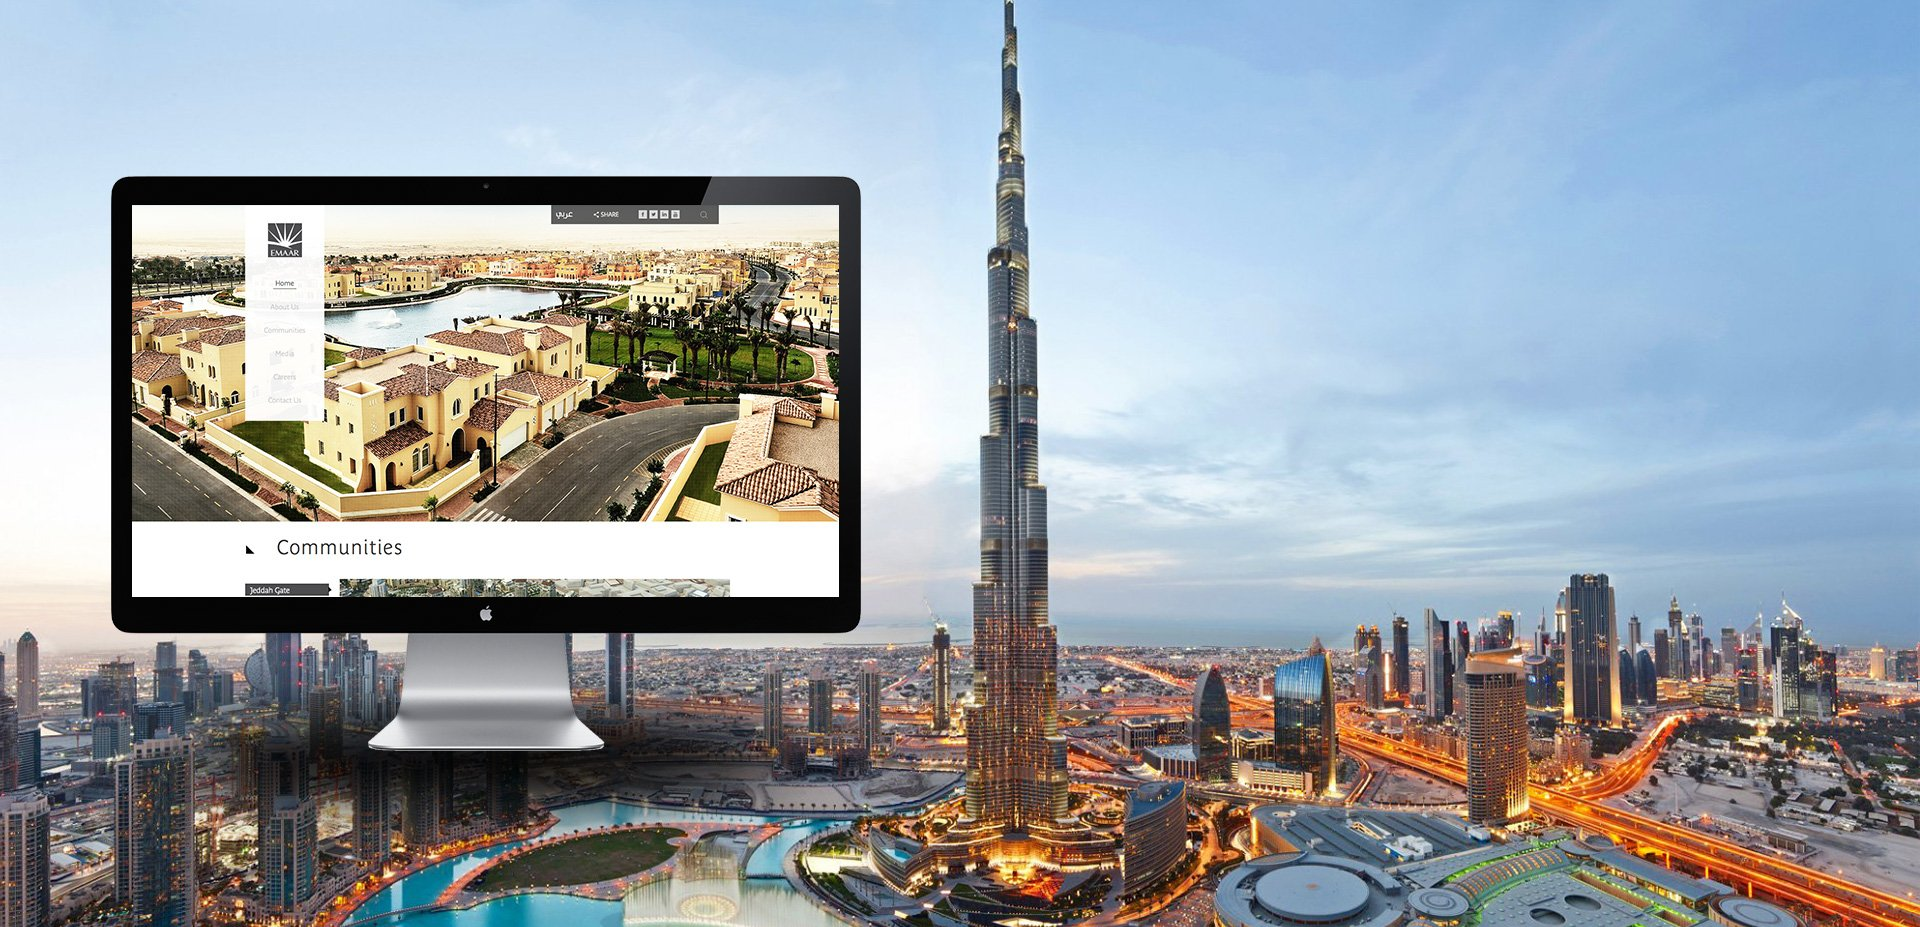 Emaar Middle East